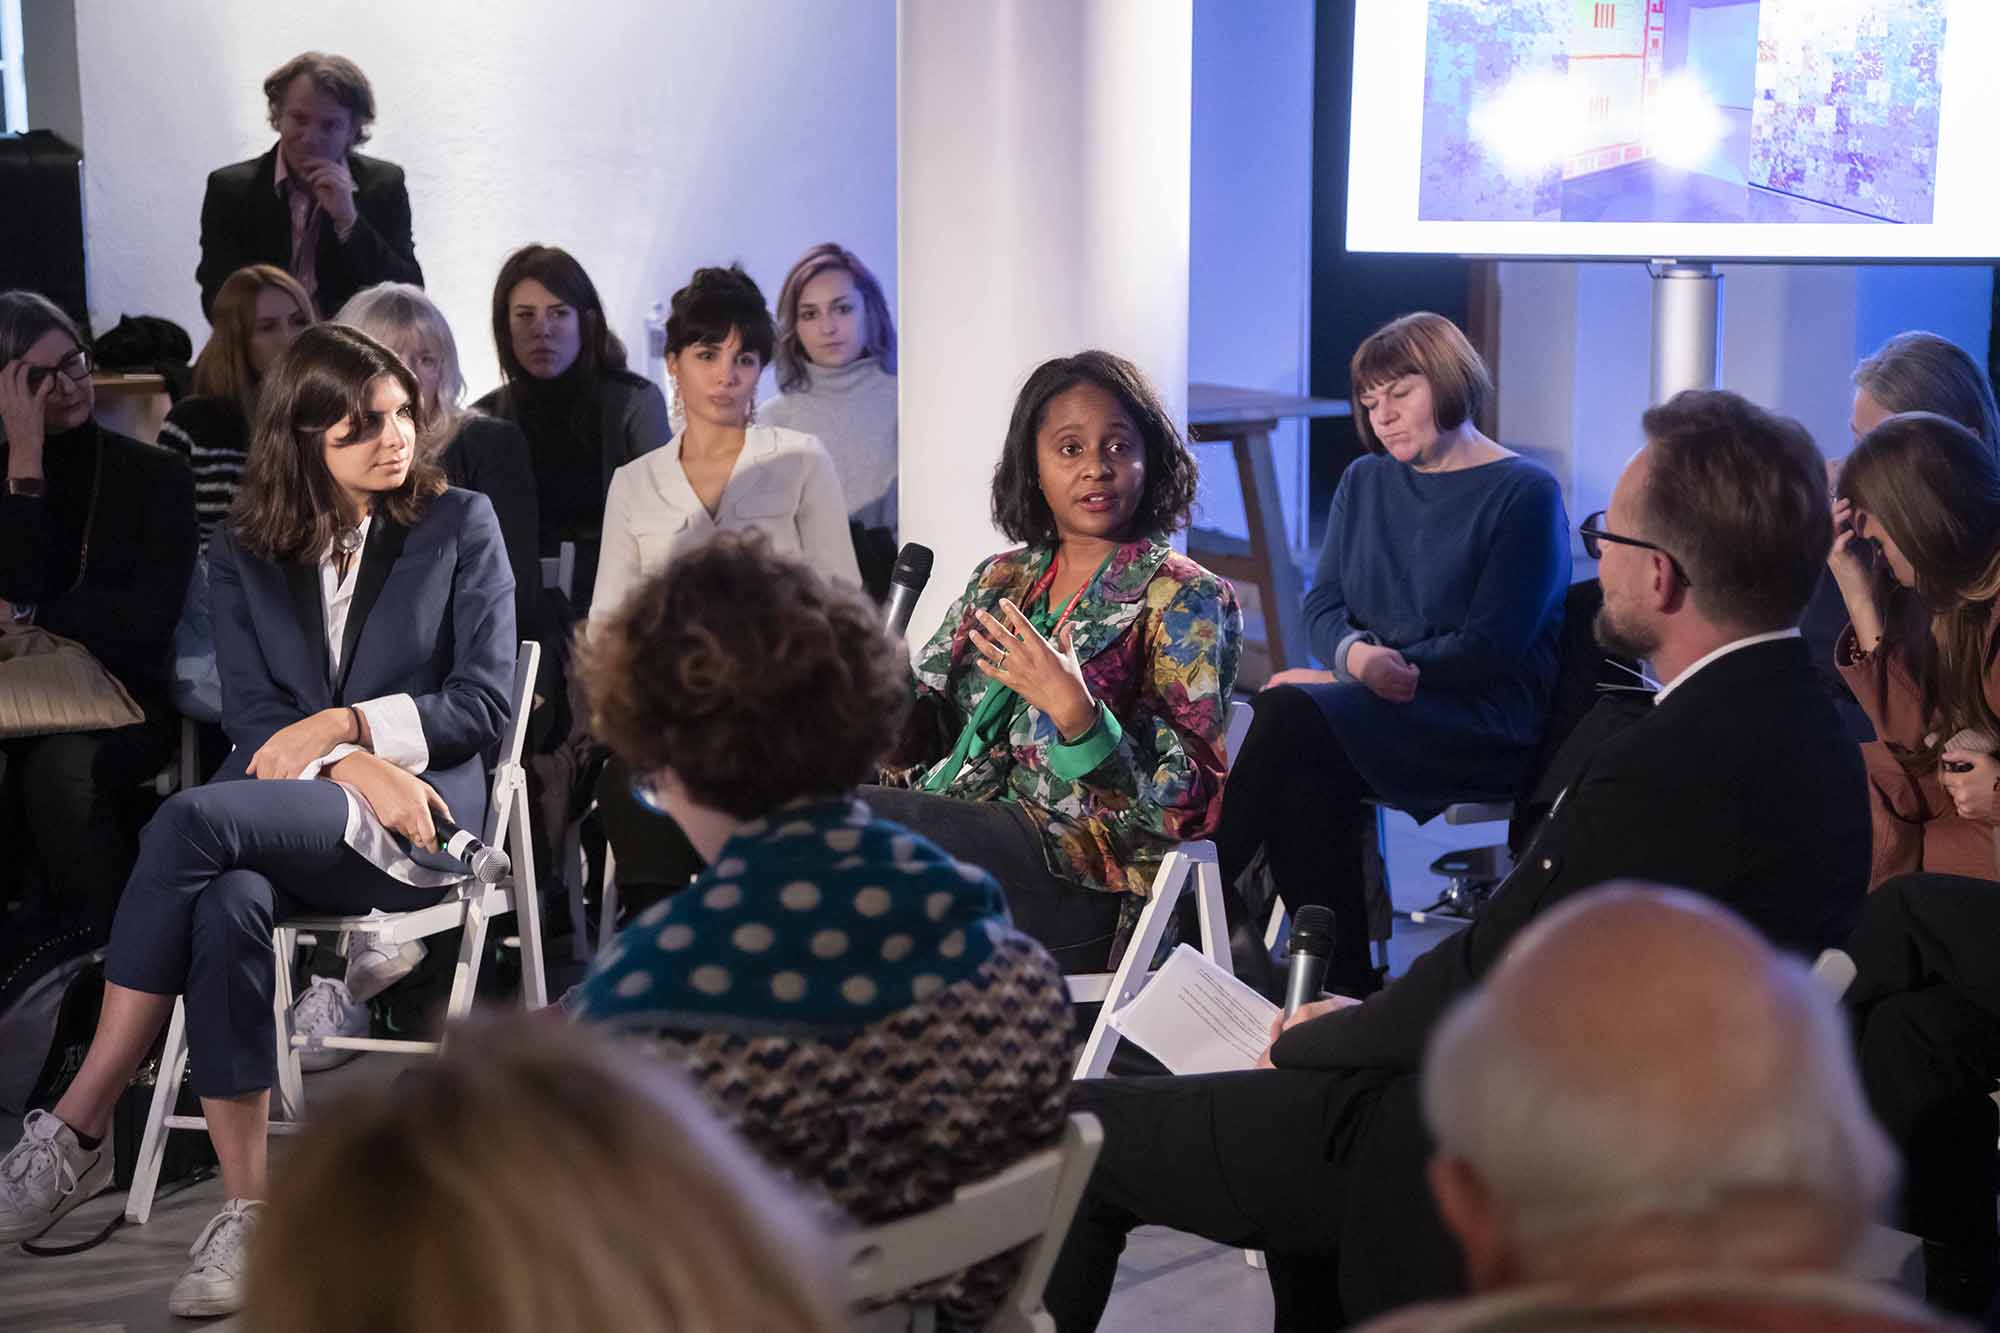 Zoé Whitley during The Right to Refuse Therme Forum at British Pavilion during the 2019 Venice Biennale